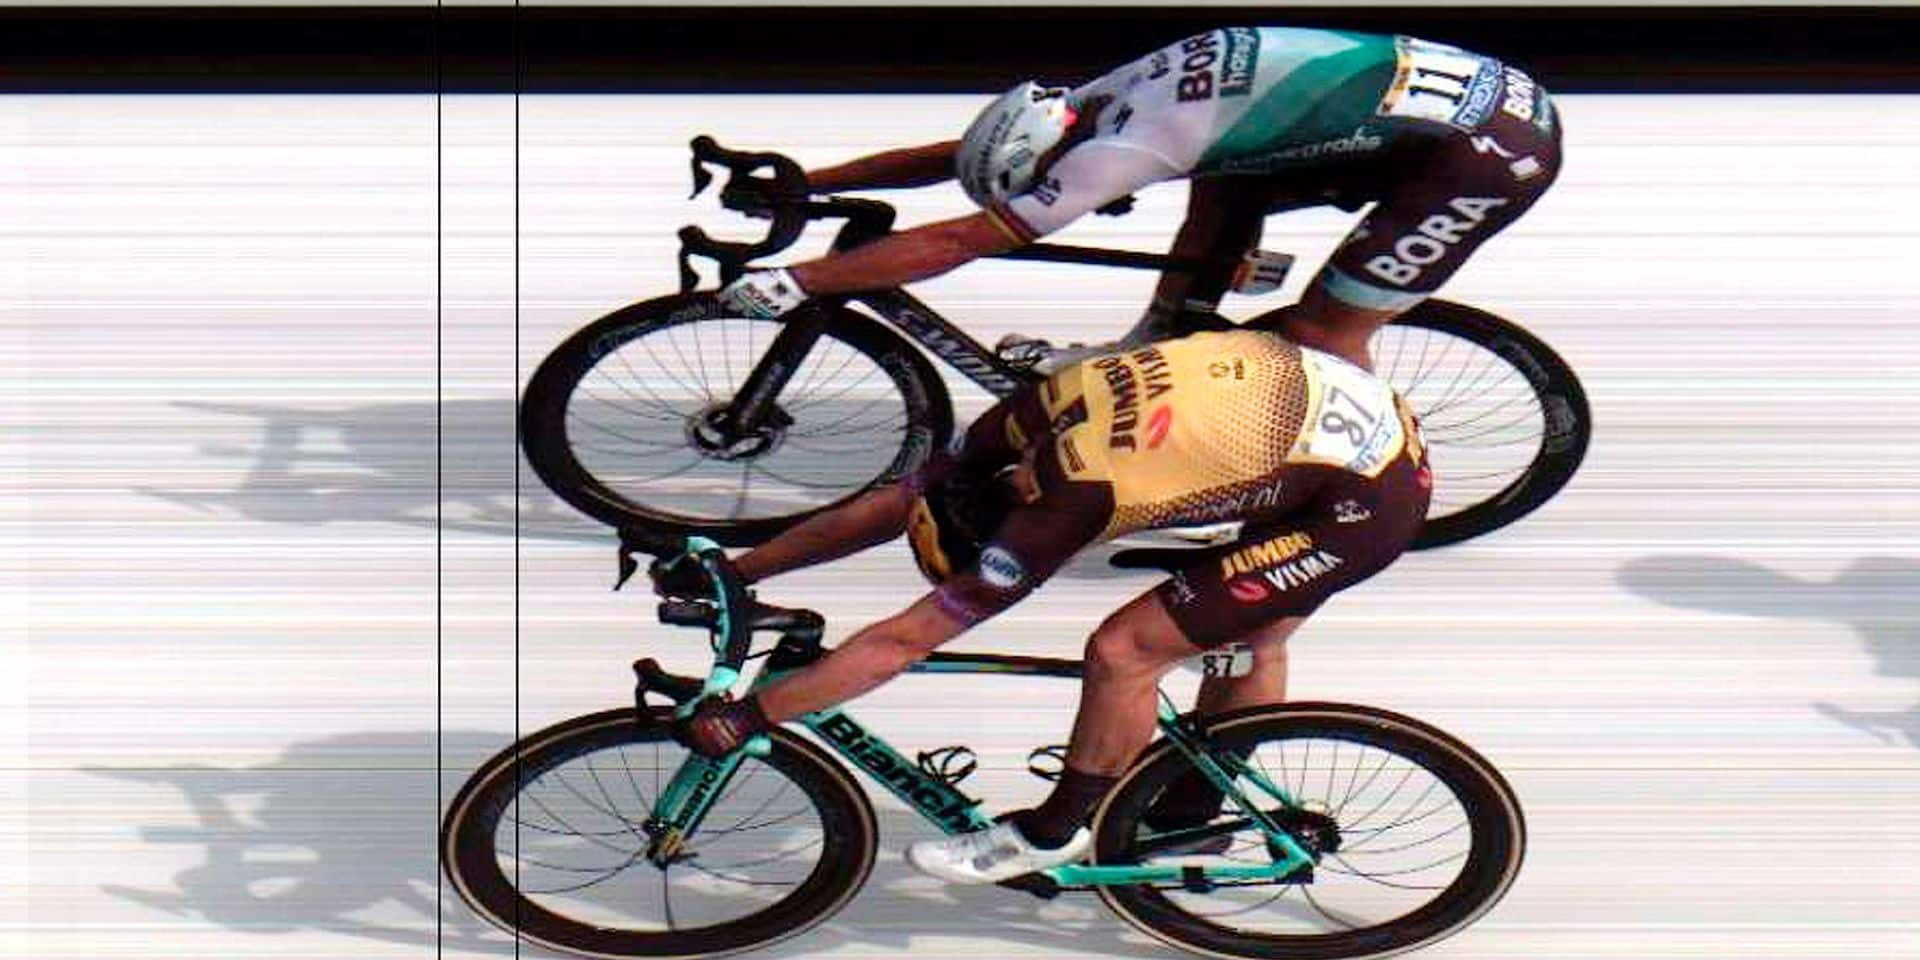 In this photo finish released by Amaury Sport Organization (ASO) Slovakia's Peter Sagan, top, and Netherlands' Mike Teunissen, cross the finish of the first stage of the Tour de France cycling race over 194.5 kilometers (120,86 miles) with start in Brussels and finish in Brussels. Saturday, July 6, 2019. Teunissen won the stage. (AP Photo/ASO)